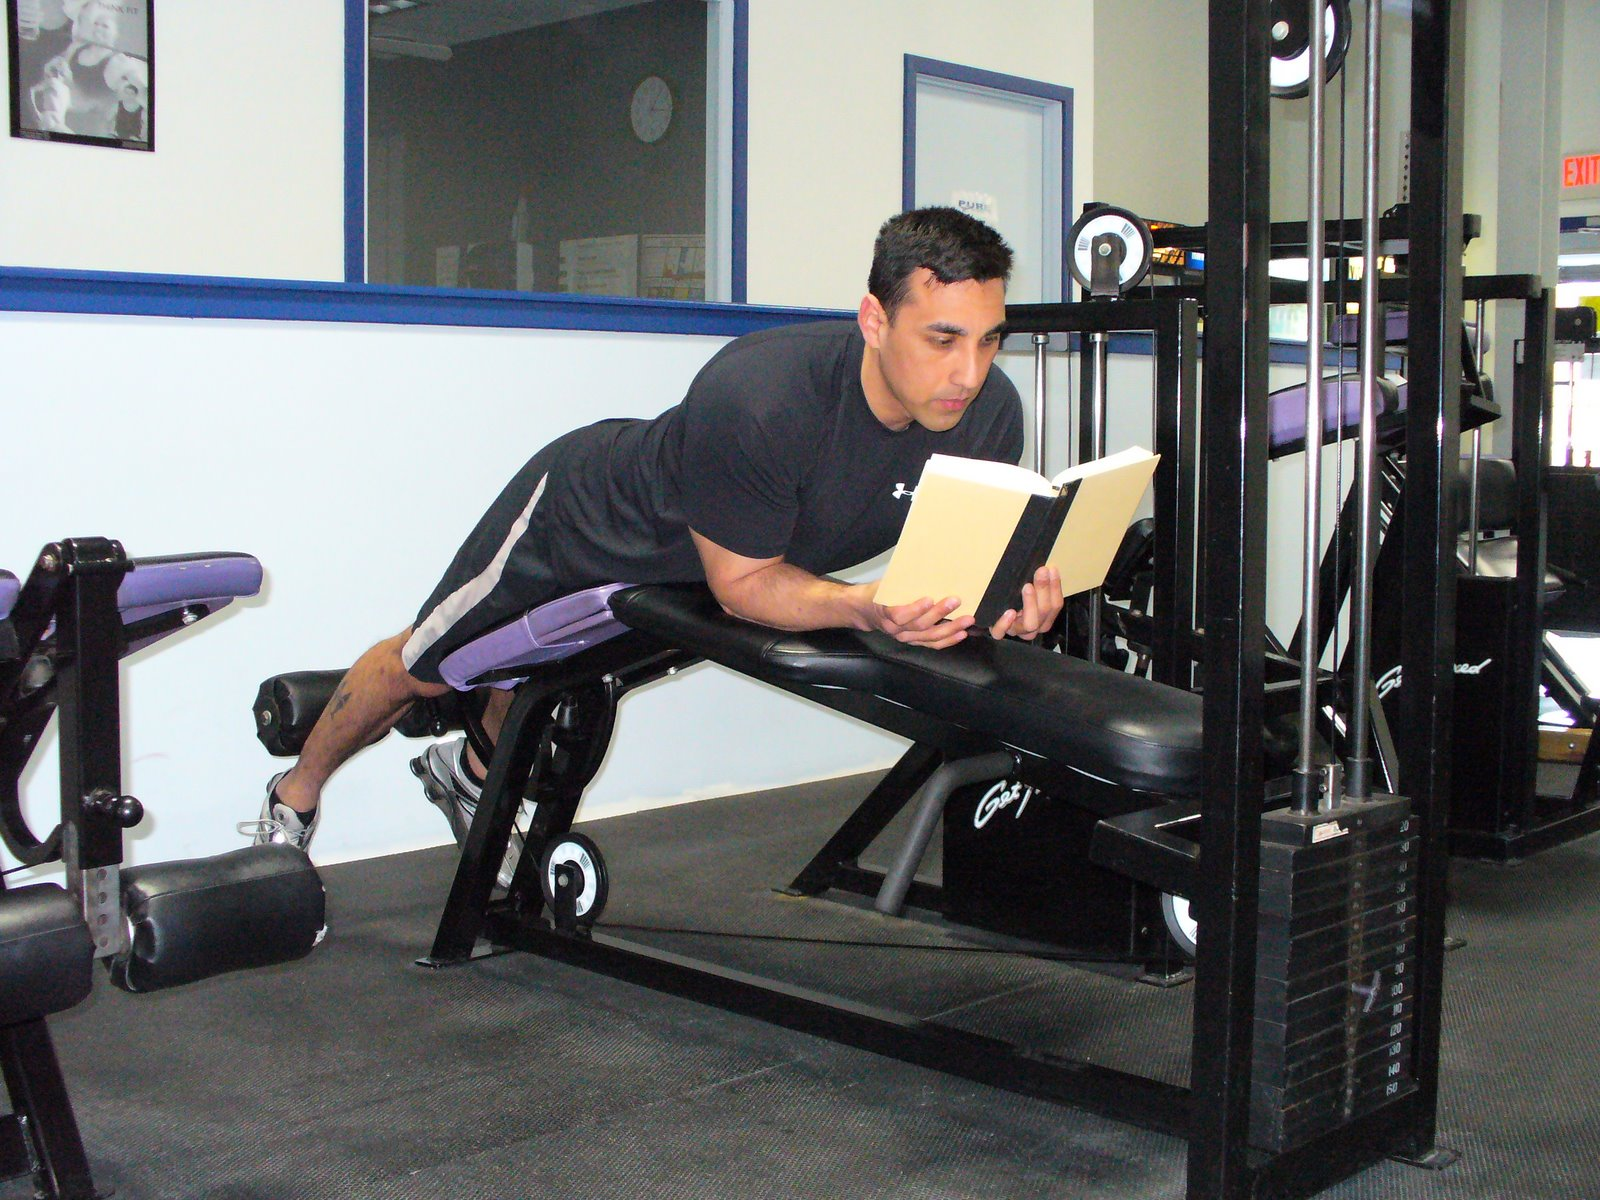 reading on gym equipment